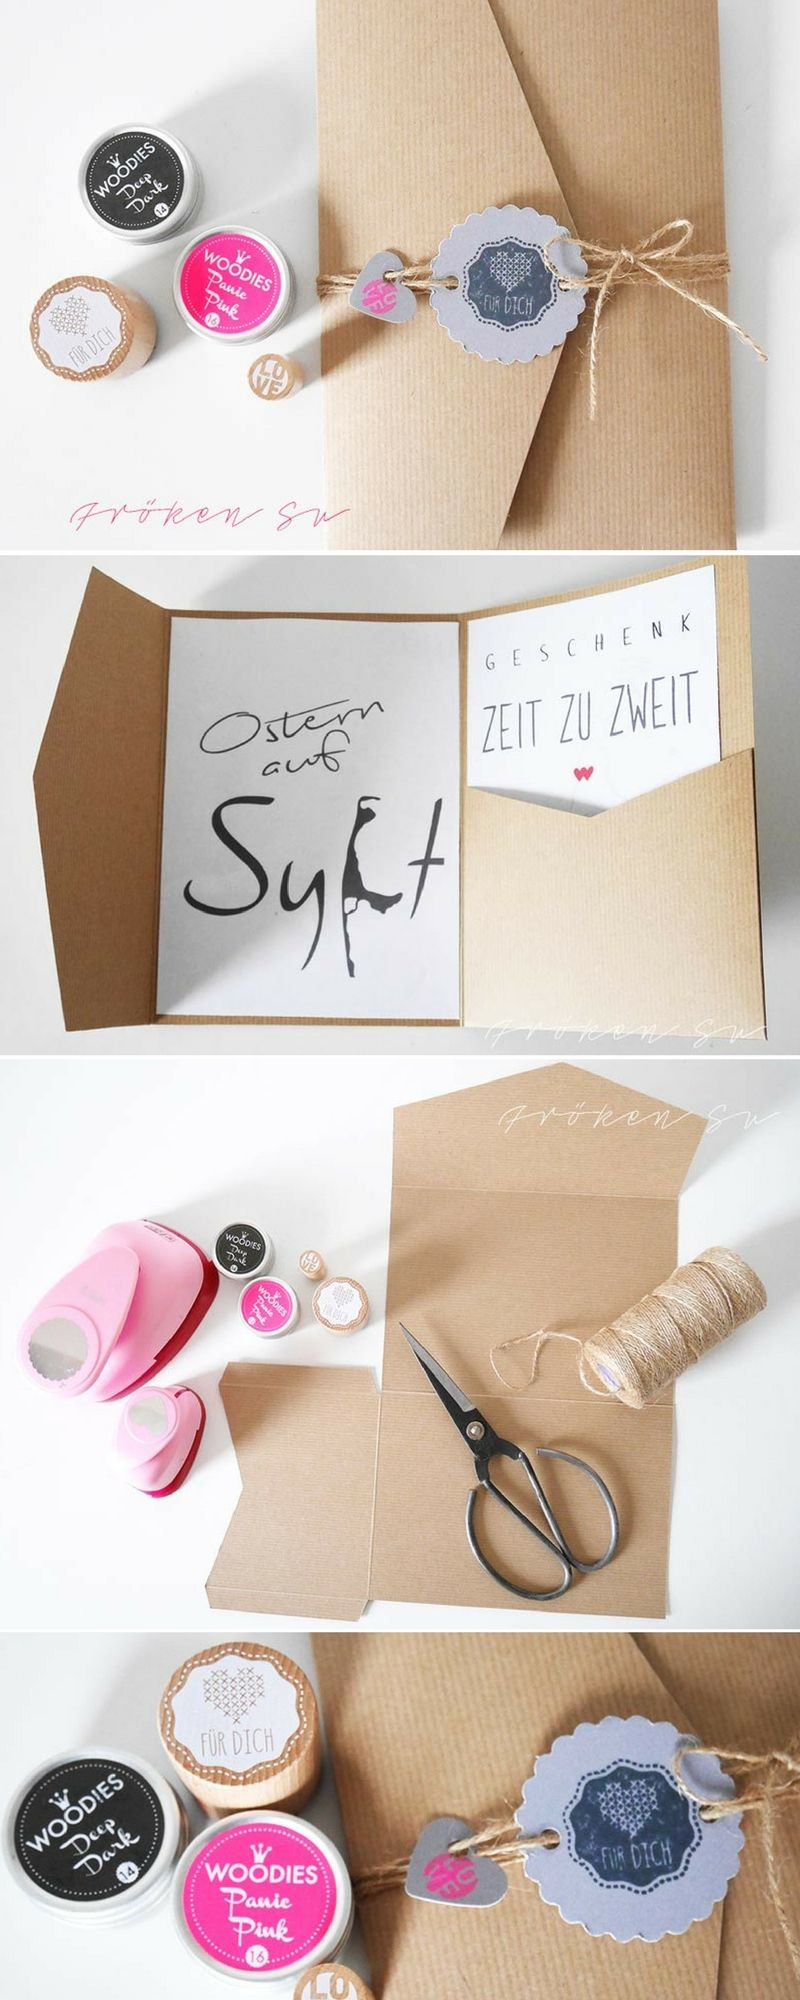 diy geschenkkarte selber basteln diy papier geschenke verpacken papierkistchen pinterest. Black Bedroom Furniture Sets. Home Design Ideas